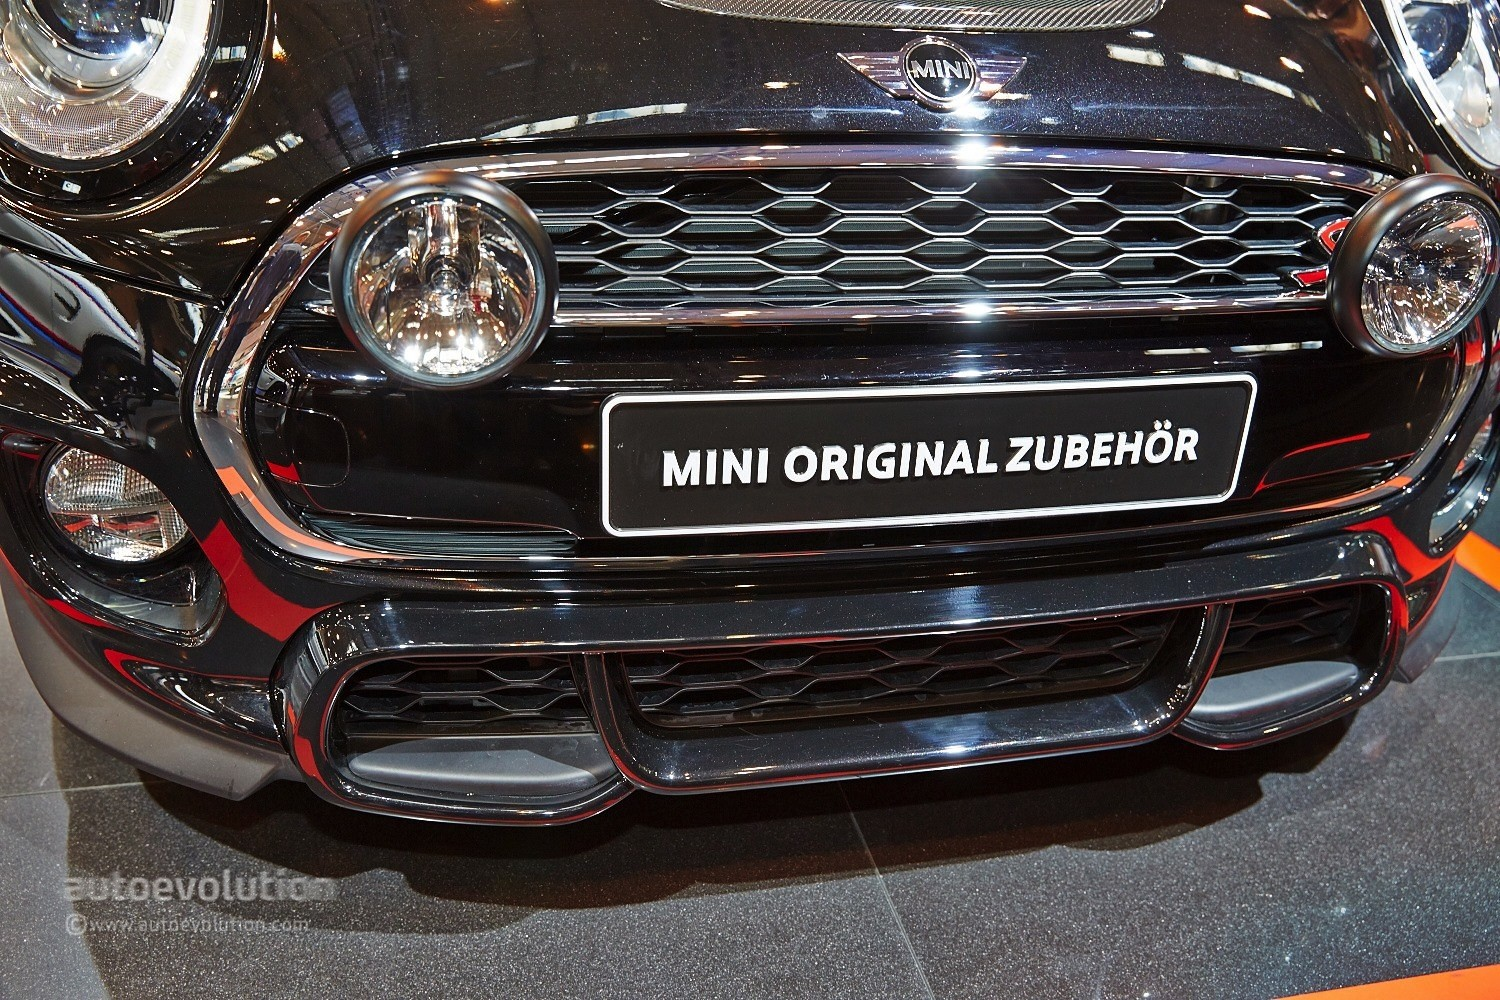 Bmw Mini Cooper >> 2015 MINI Cooper S Gets 211 HP with JCW Tuning Kit at Essen [Live Photos] - autoevolution